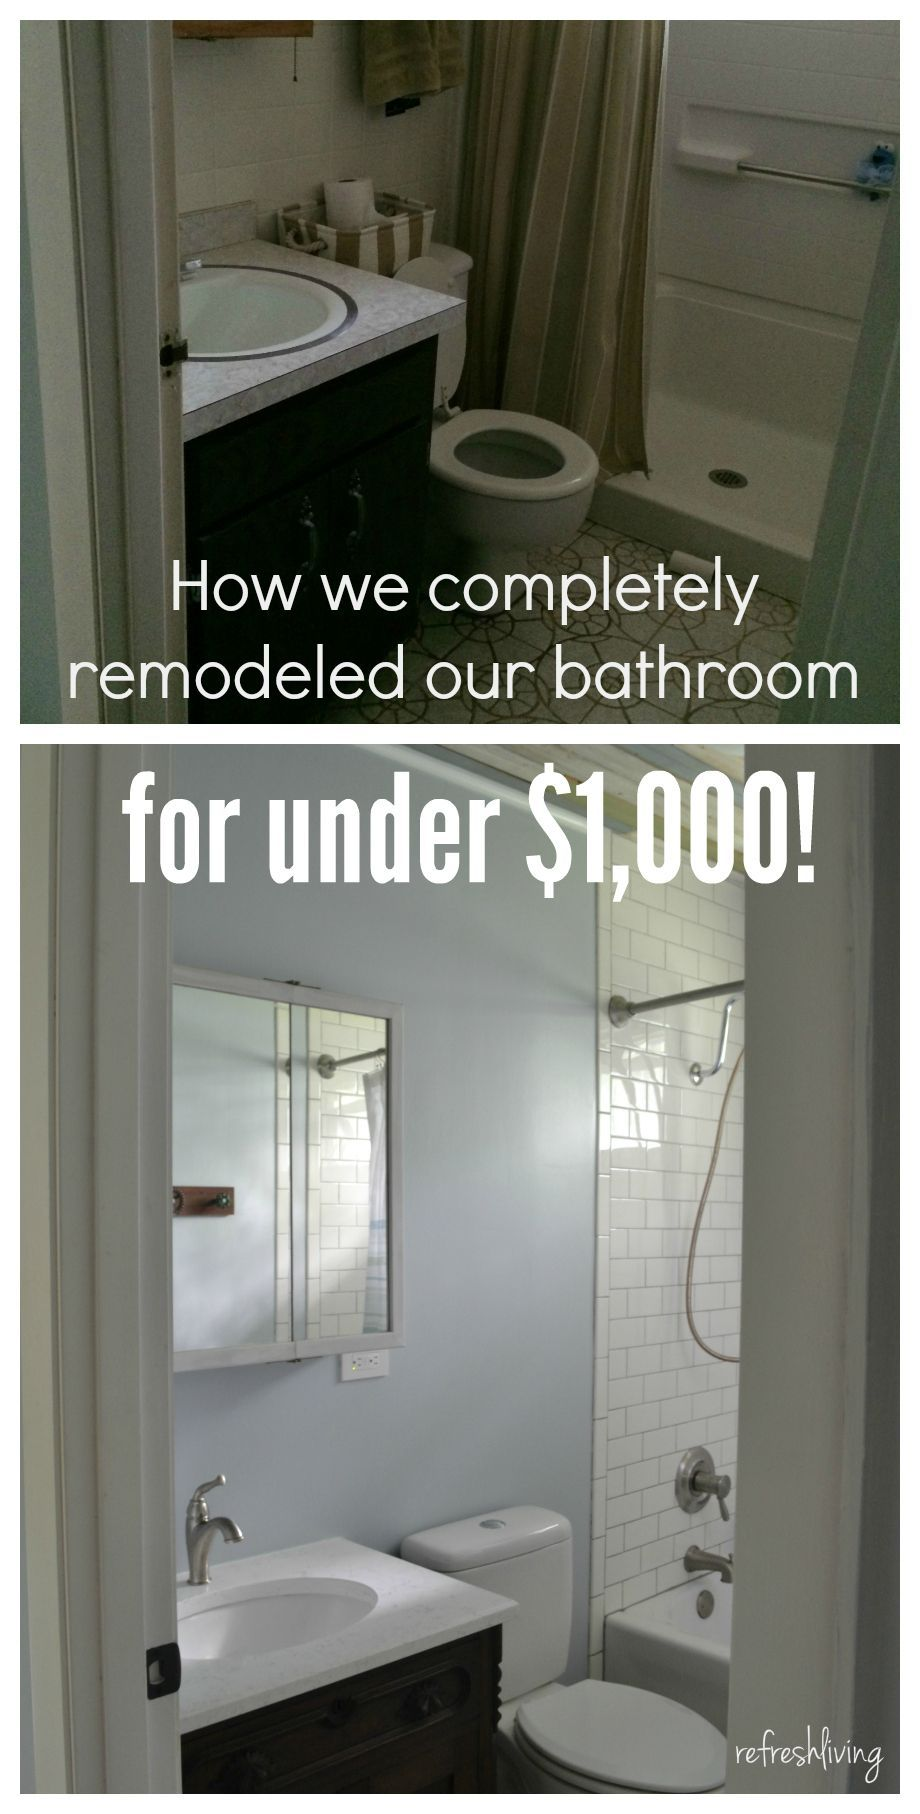 Bathroom Remodel On A Budget With Reclaimed Materials Budget Bathroom Remodel Diy Bathroom Remodel Bathroom Design